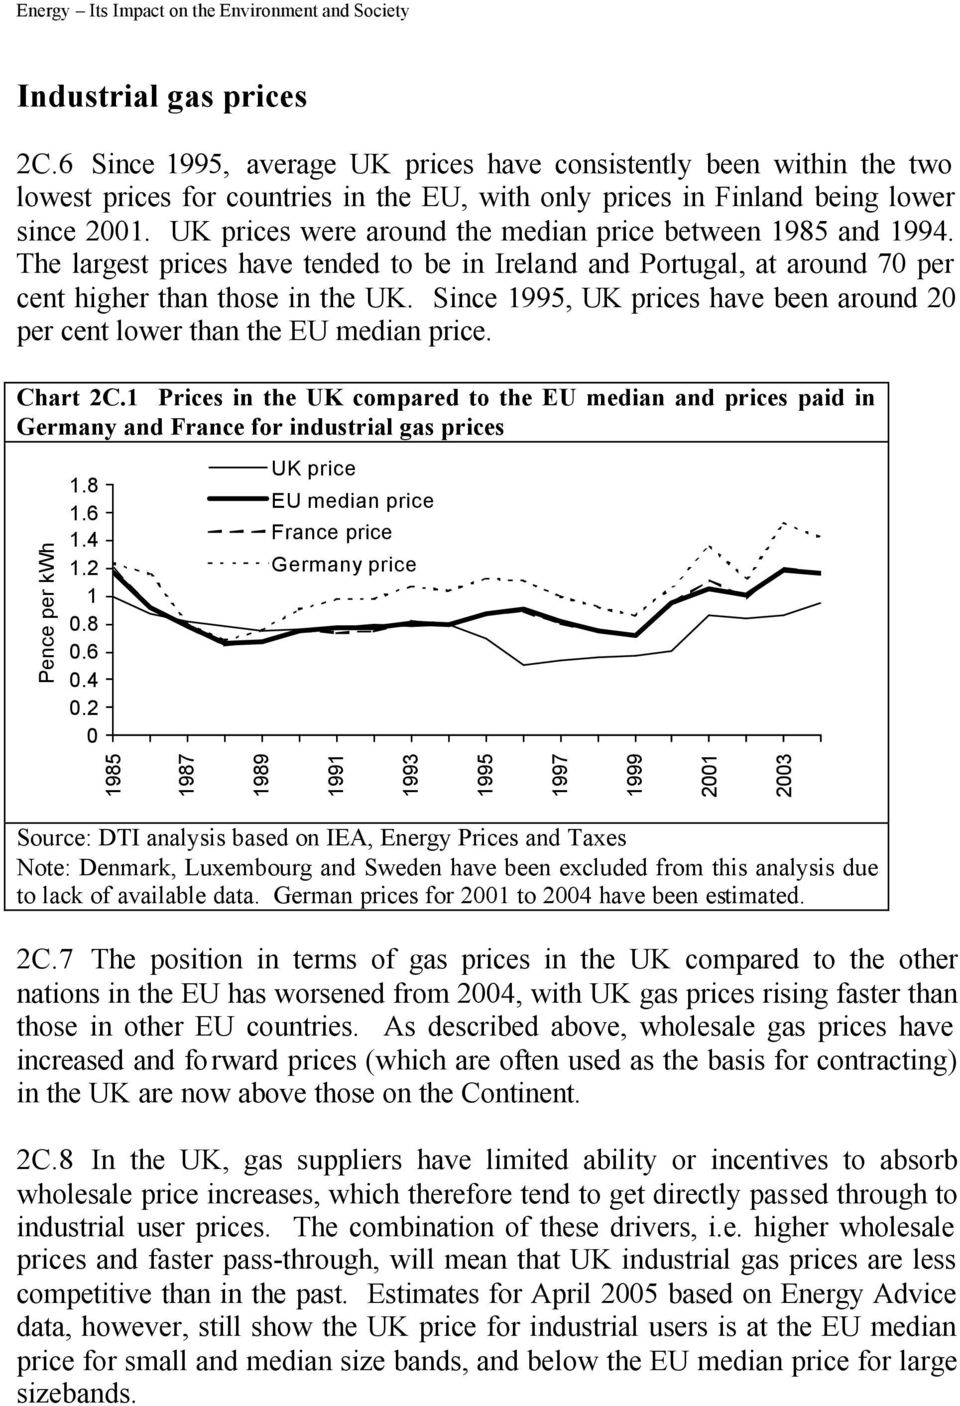 Since, s have been around 2 per cent lower than the. Chart 2C.1 Prices in the UK compared to the EU median and prices paid in Germany and France for industrial gas prices 1.8 1.6 1.4